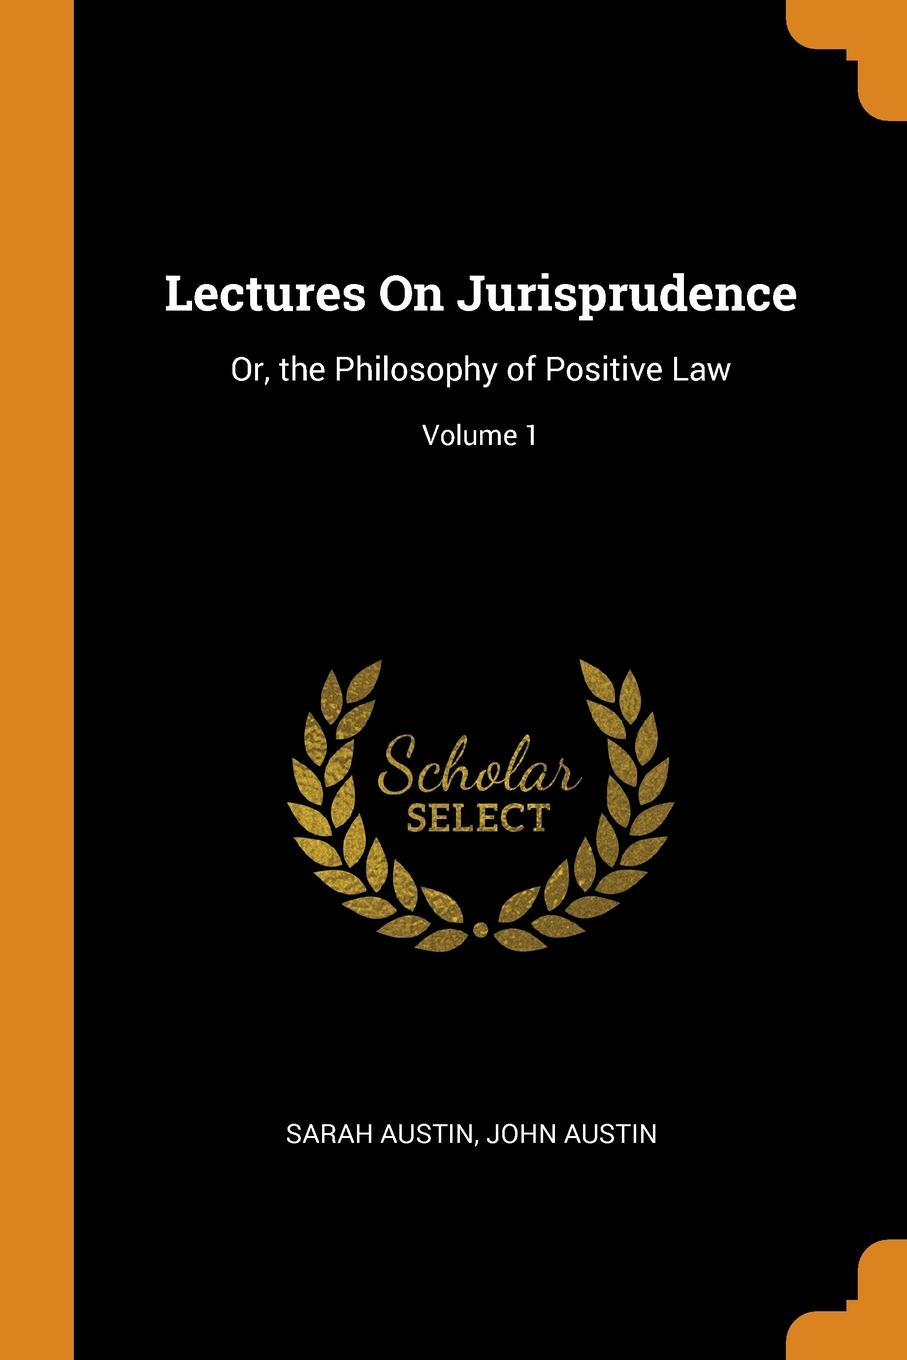 Lectures On Jurisprudence. Or, the Philosophy of Positive Law; Volume 1. Sarah Austin, John Austin